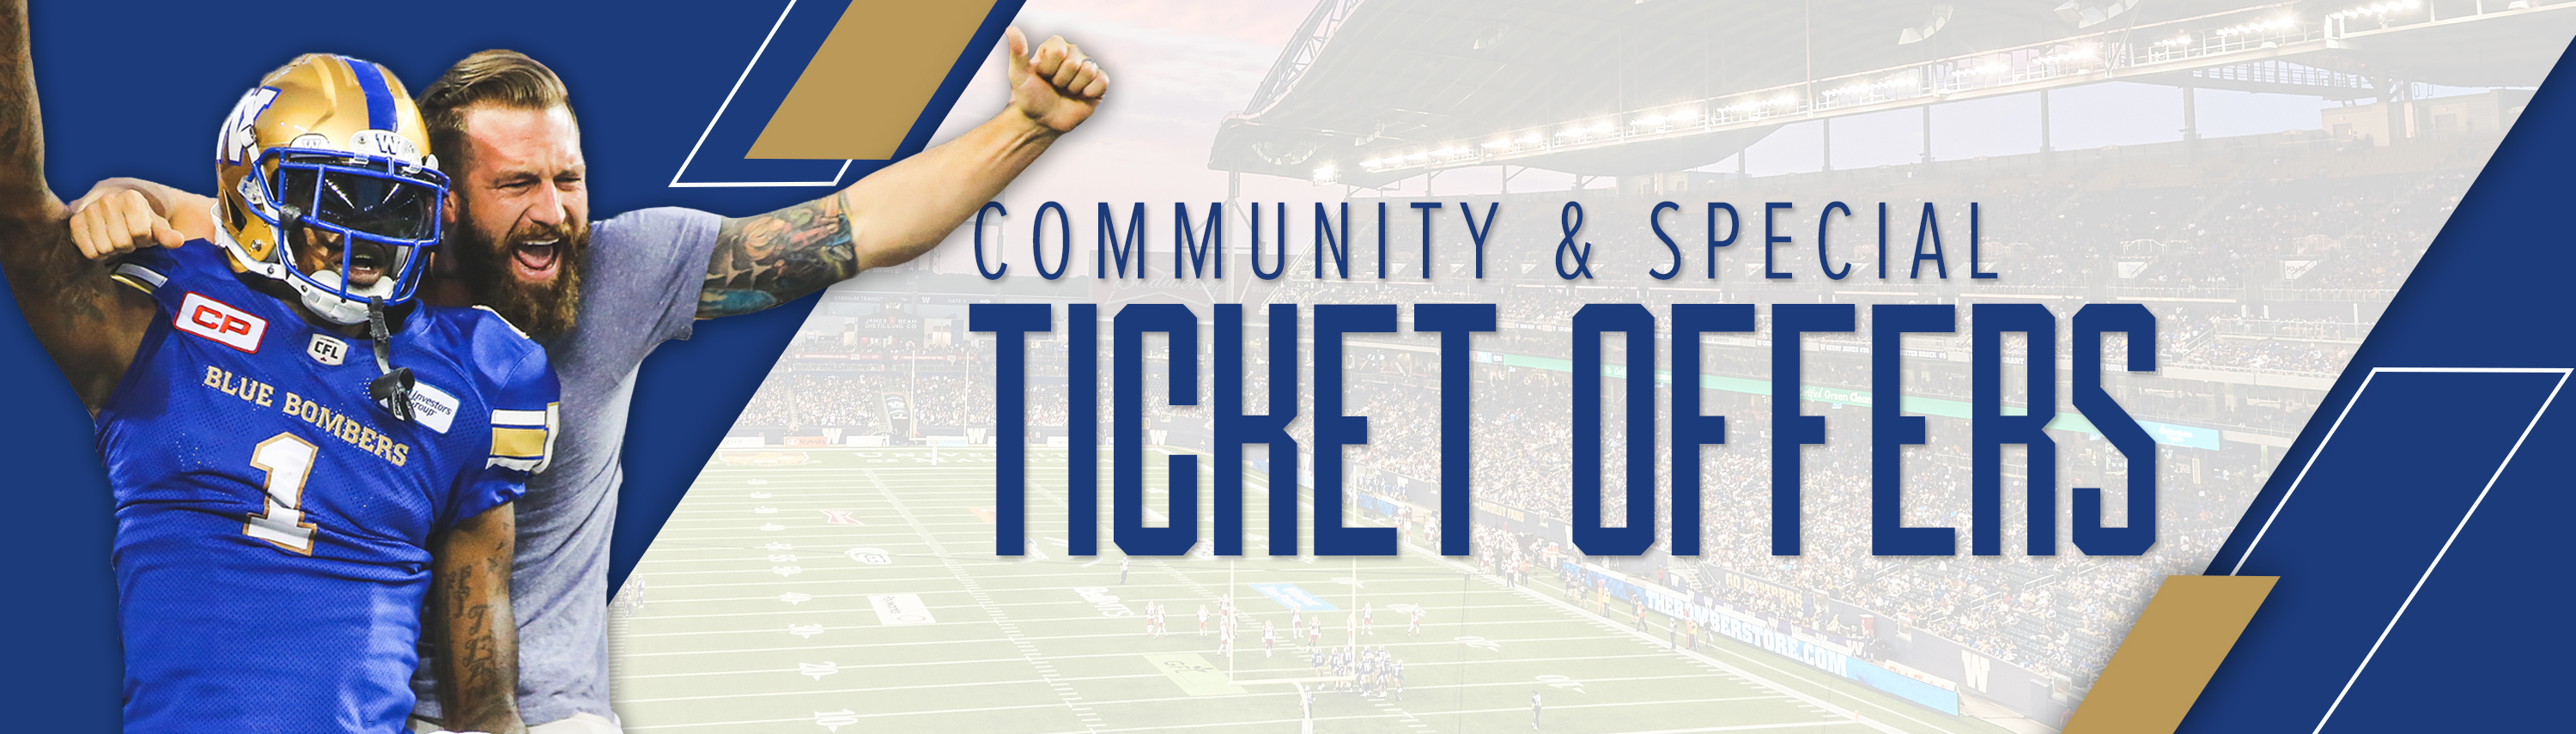 Community and Theme Night Ticket Offers